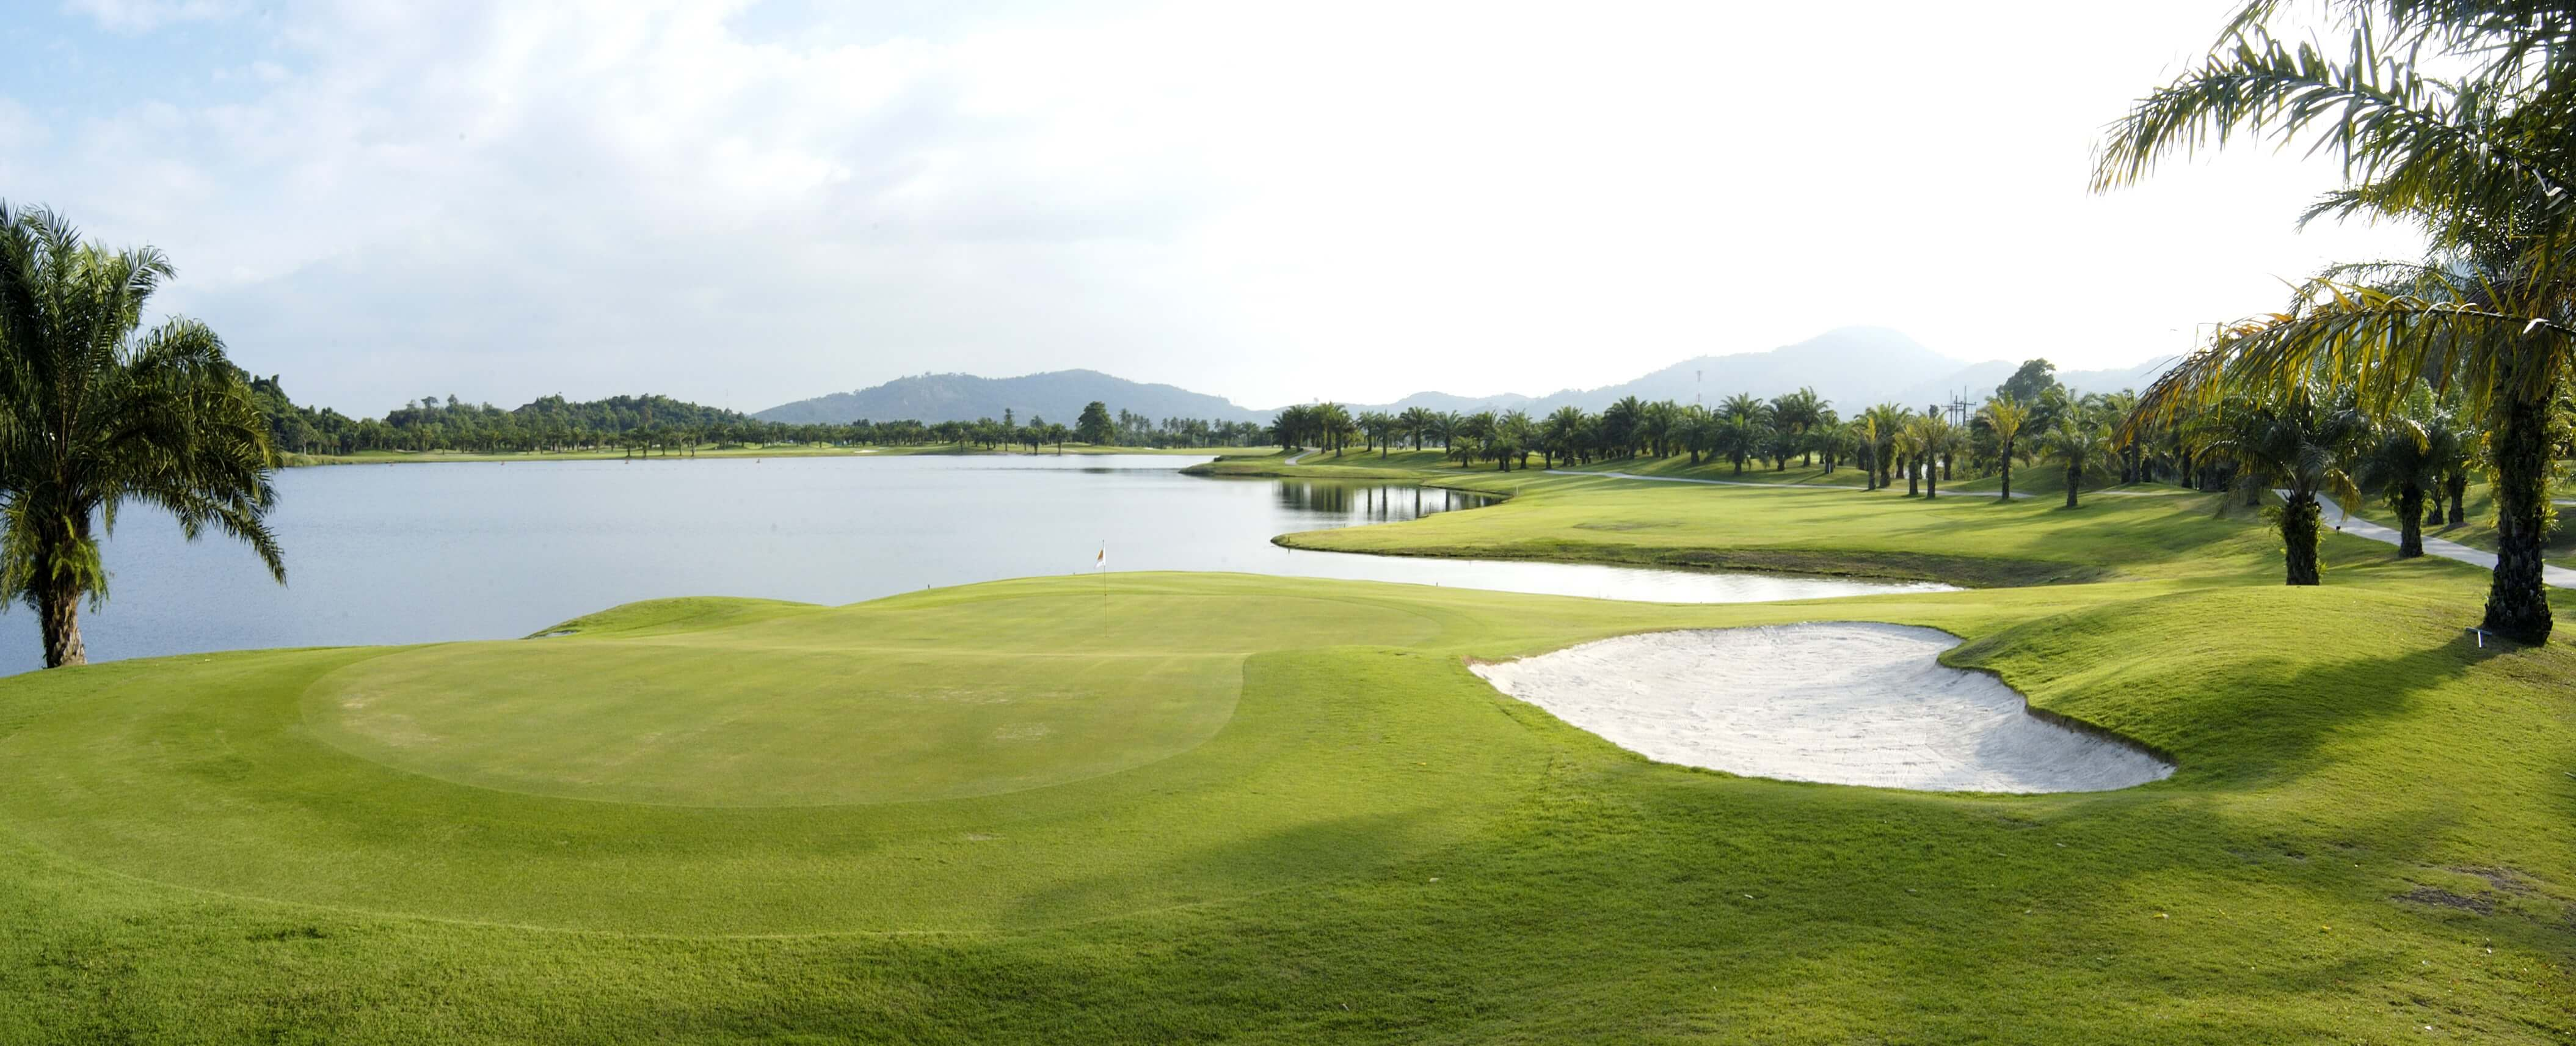 Tinidee Golf Resort@Phuket - Lochpalm